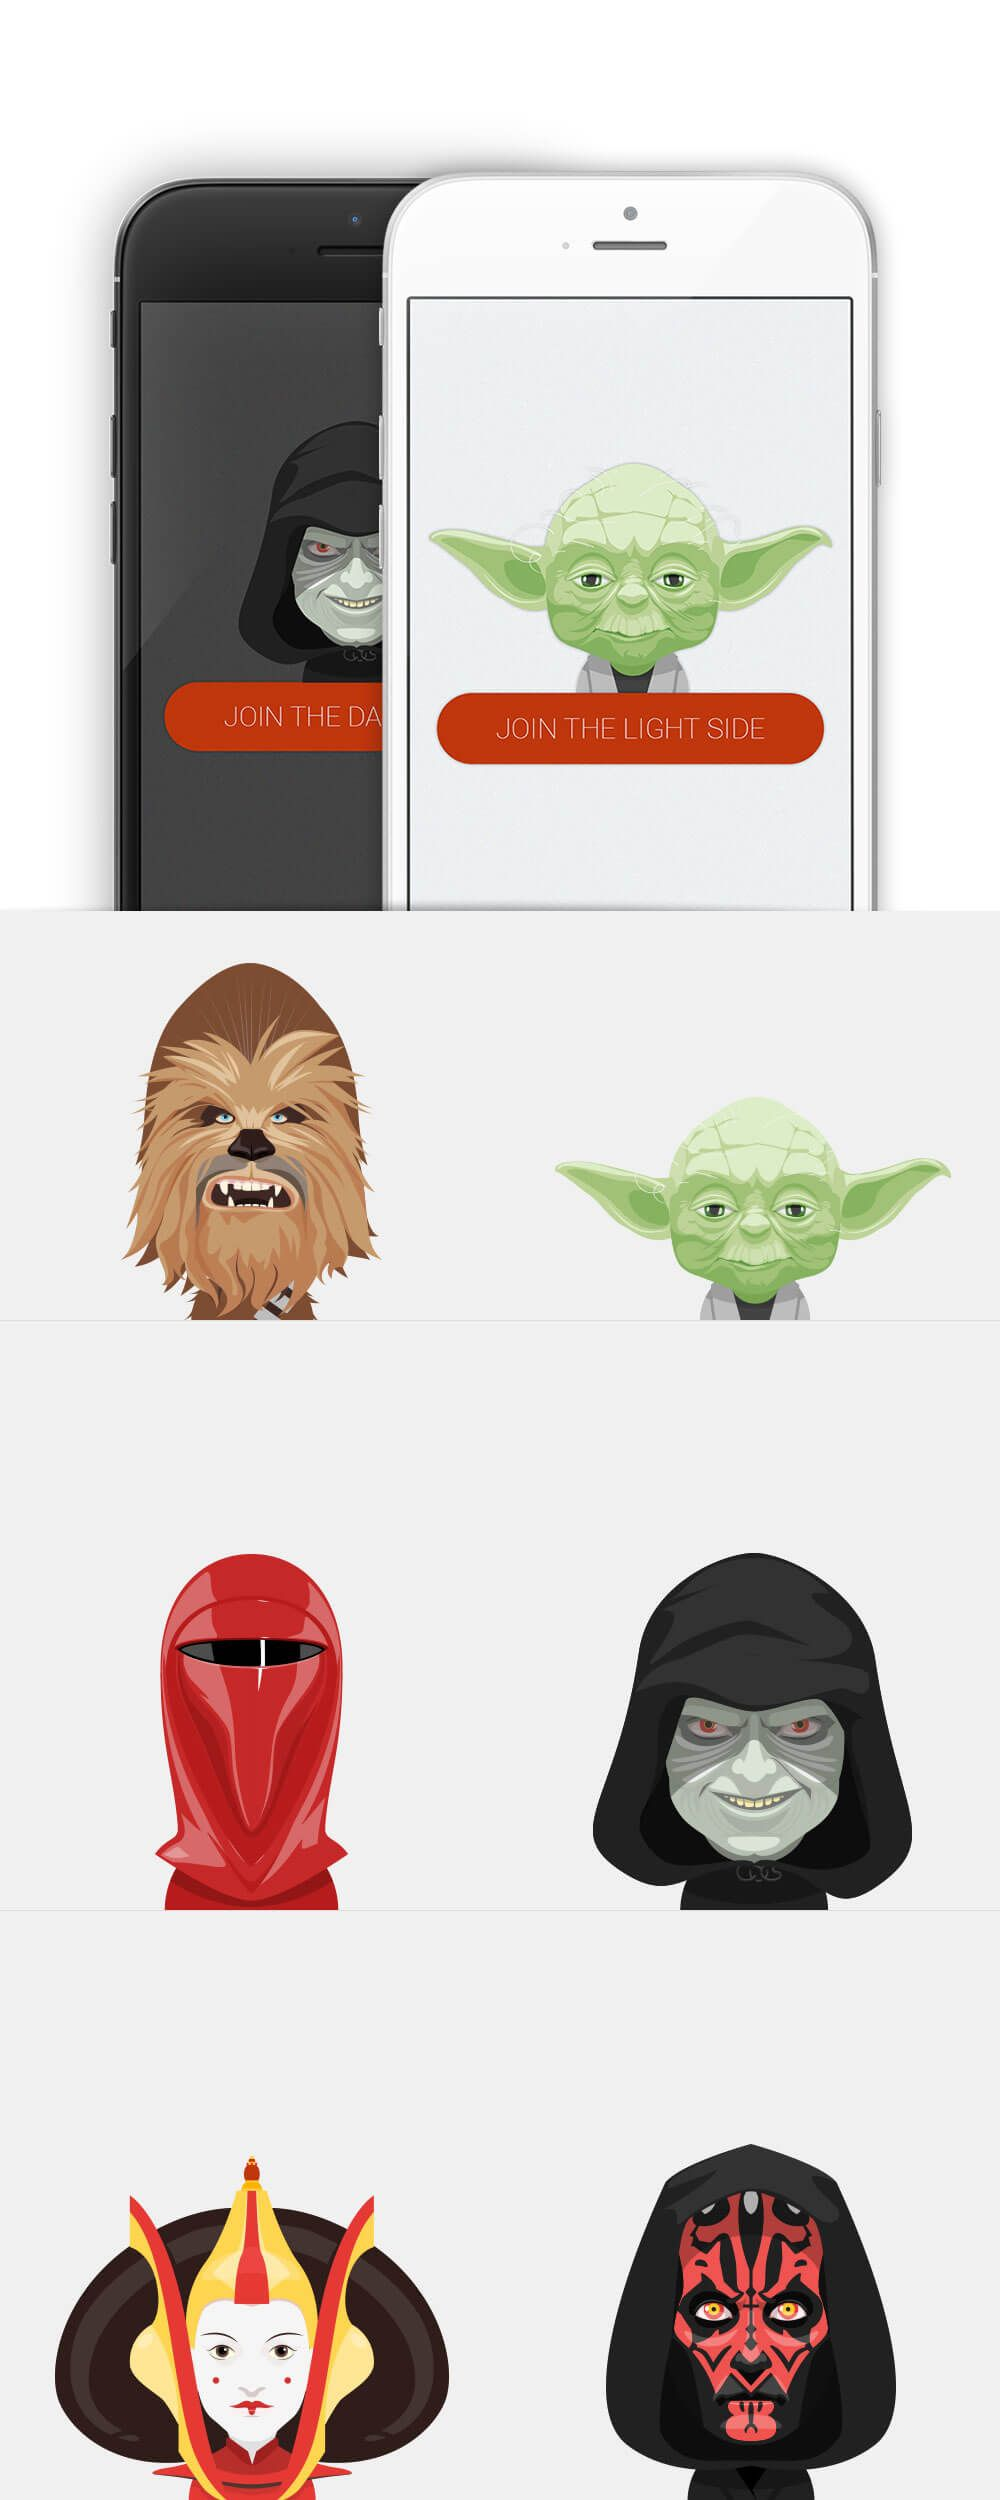 Lego Star Wars Chewbacca Icon : chewbacca, Avatars, (PNG/PSD/AI), Wars,, Icons,, Collectors